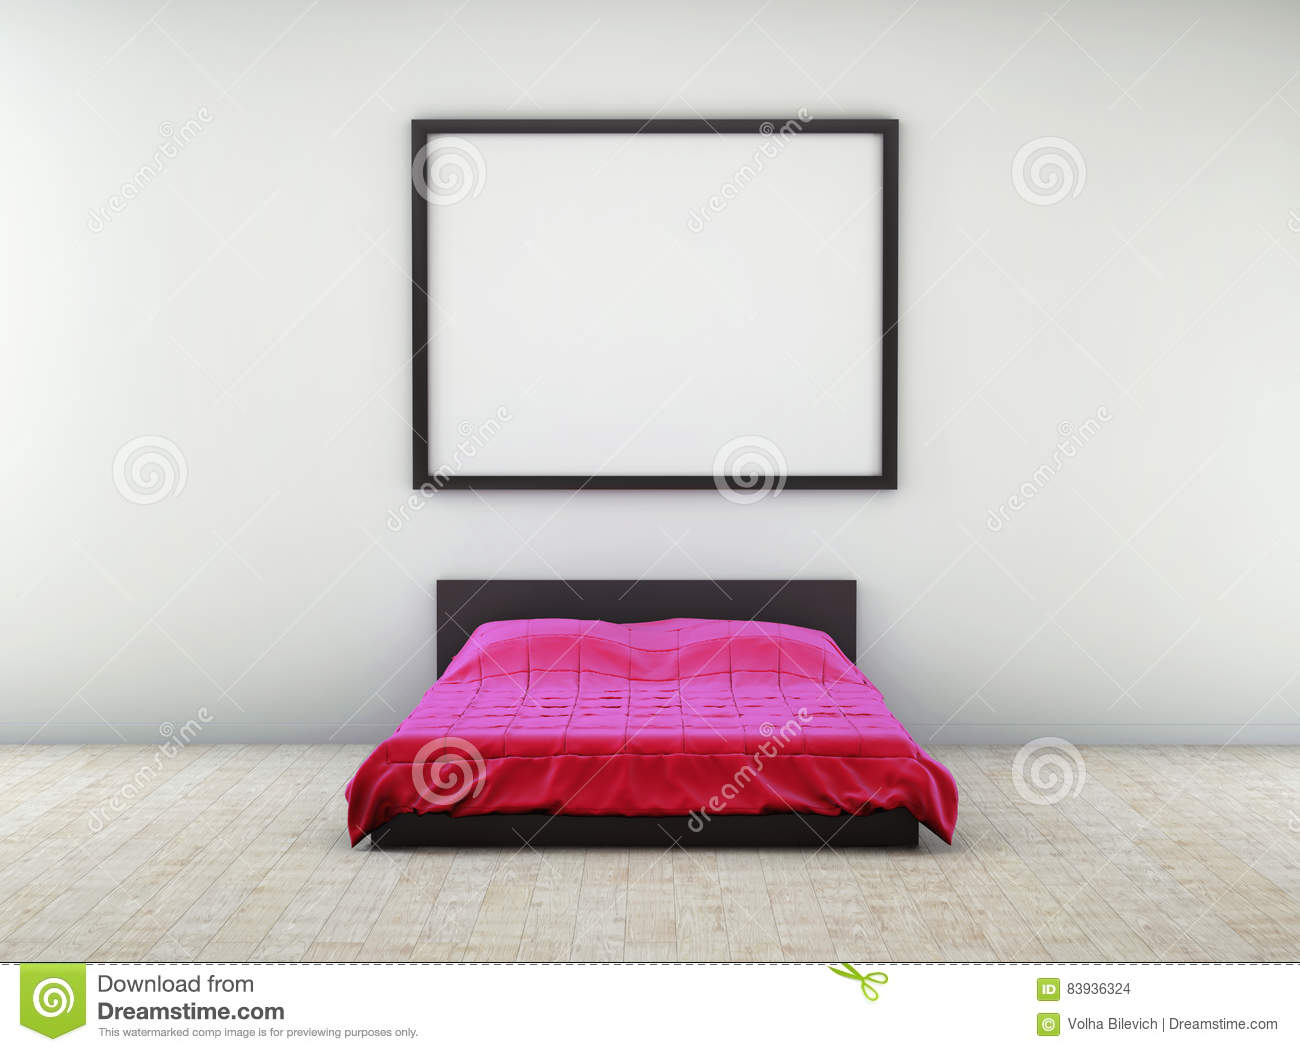 Fixation Tete De Lit Castorama Lit Au Mur Interesting Tele Au Mur Sweet Fixation Pour